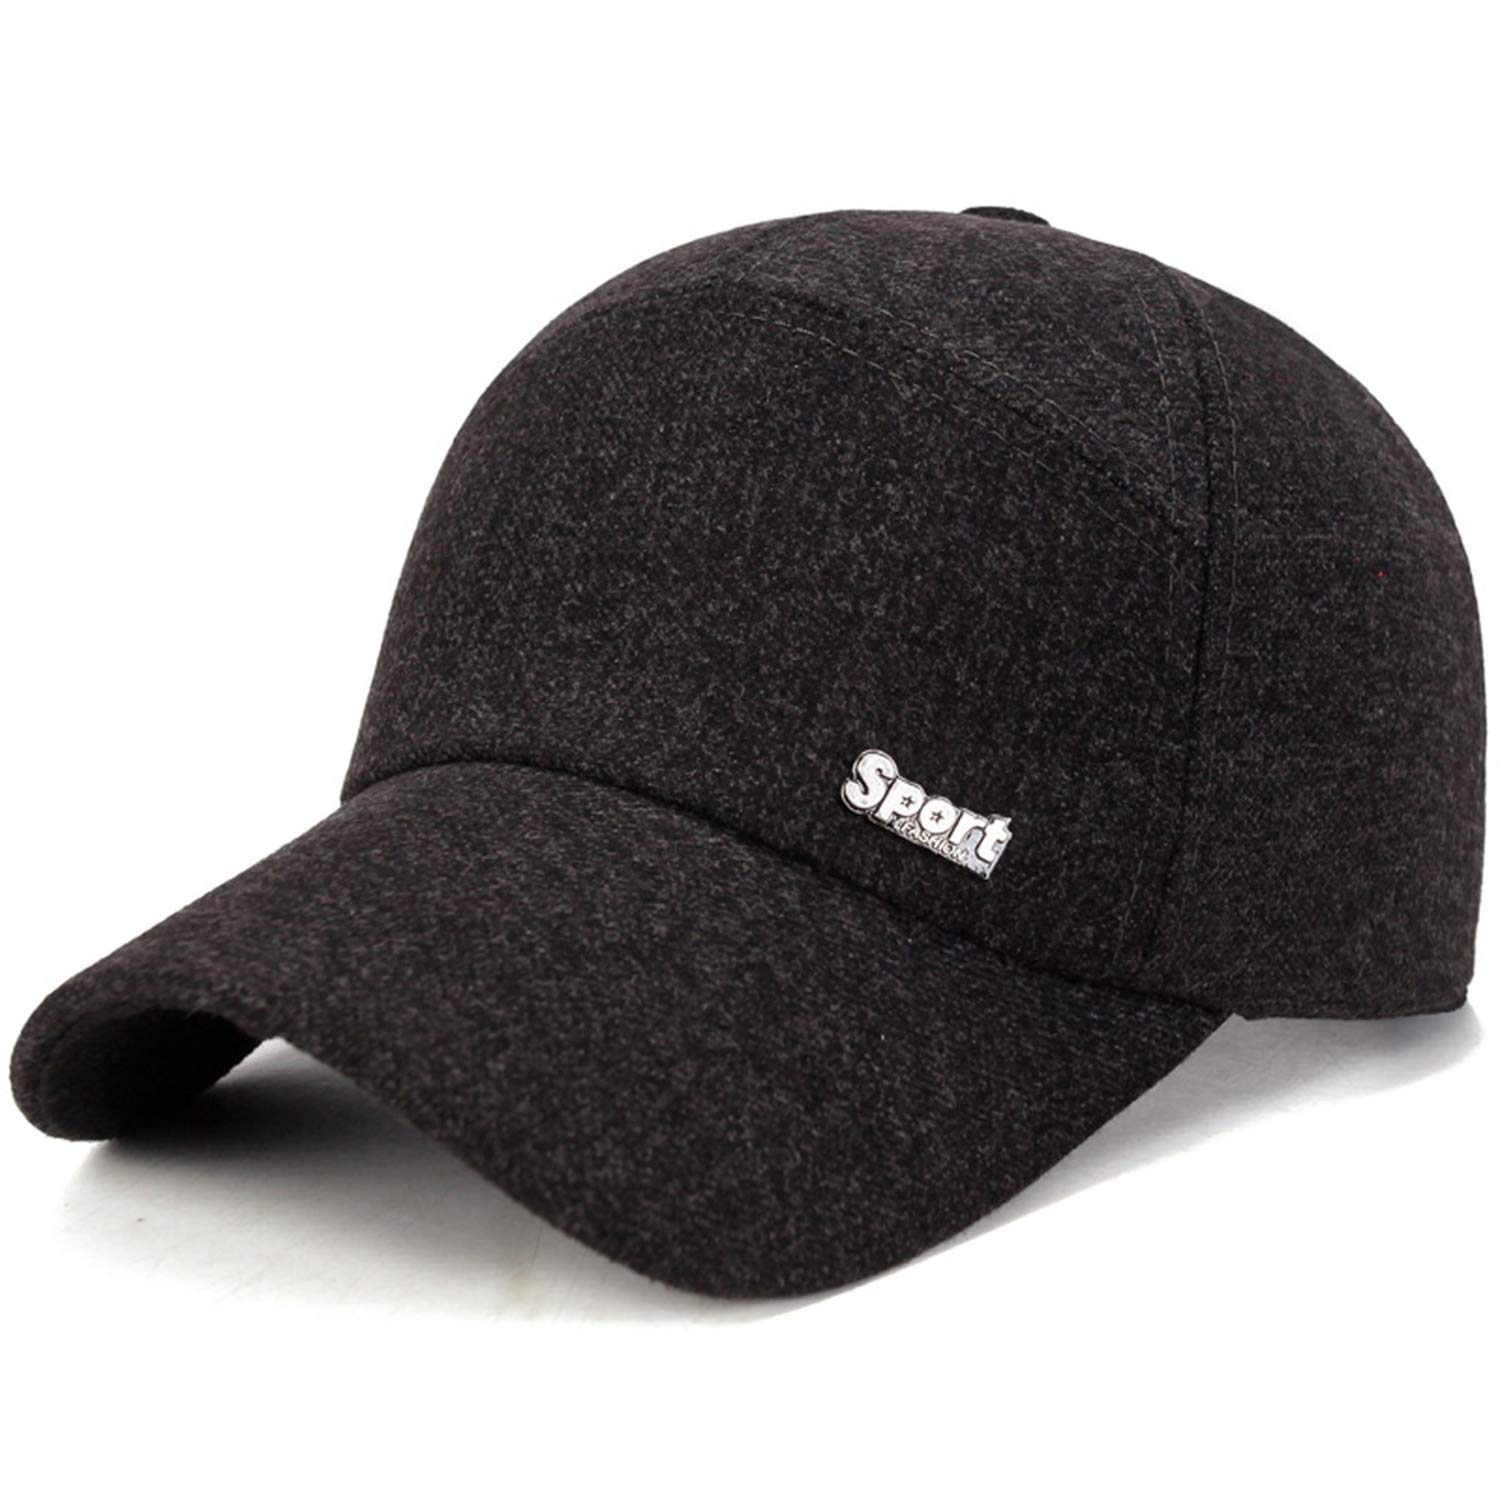 New Classic Men Baseball Cap Spring Summer Wool Hat with Earflap Adjustable Trucker Caps Casual Hats